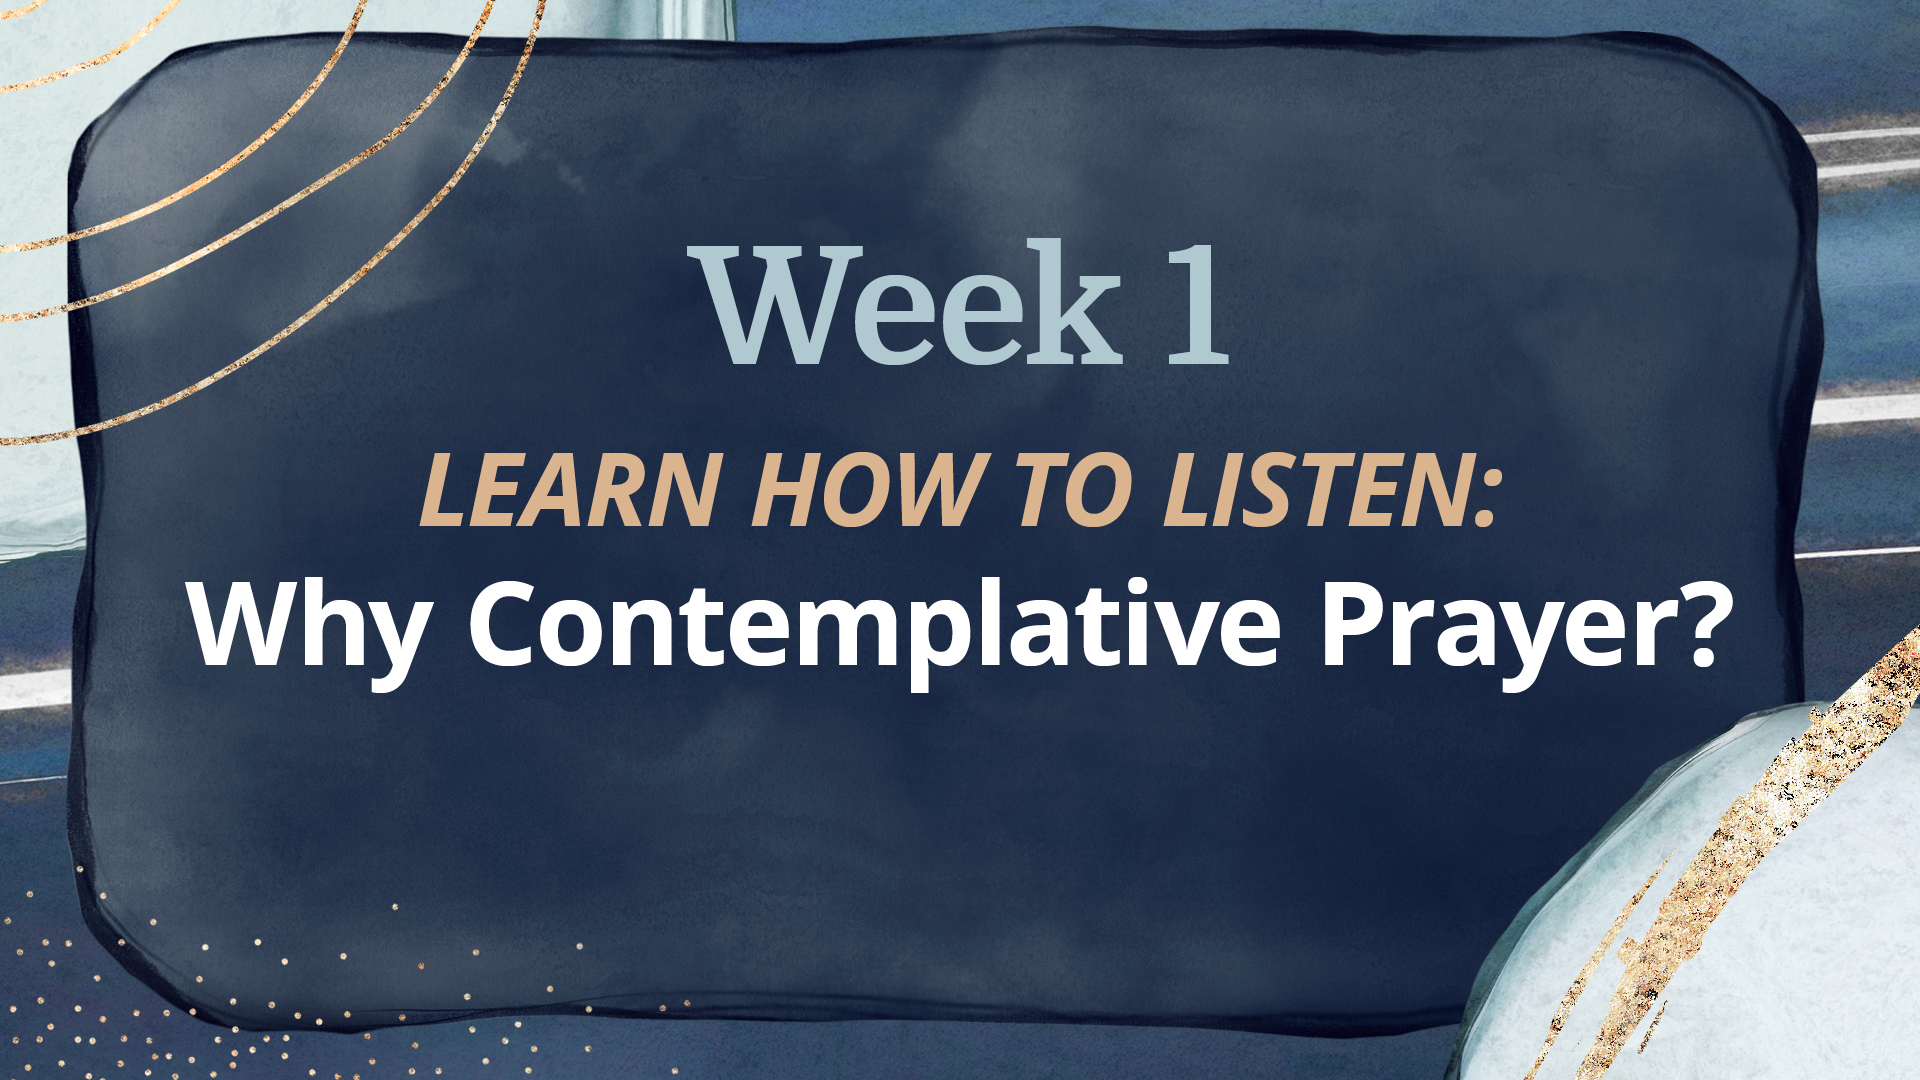 WEEK 1: Why Contemplative Prayer?